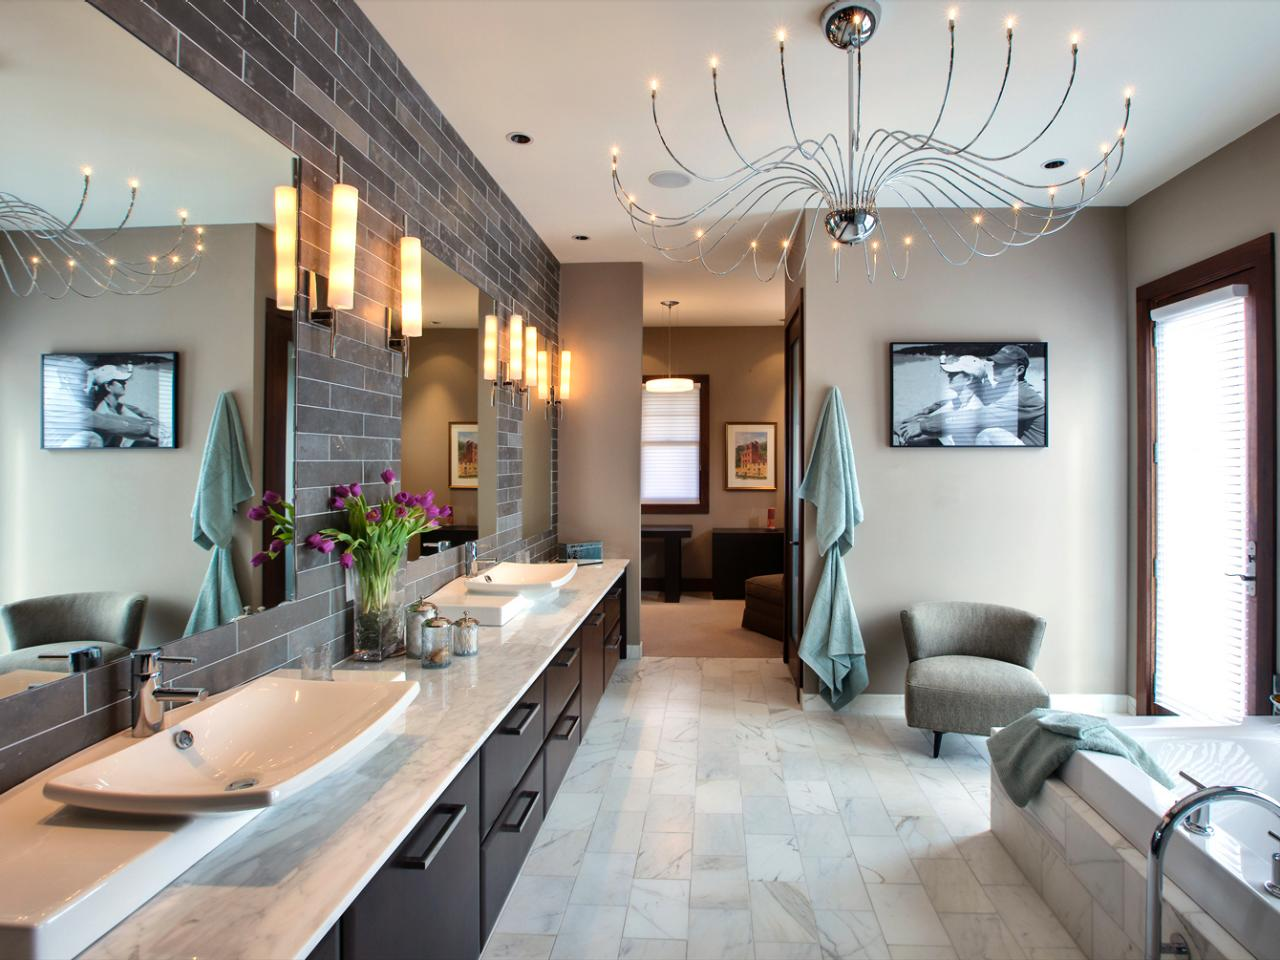 13 dreamy bathroom lighting ideas bathroom ideas for Contemporary bathroom lighting ideas